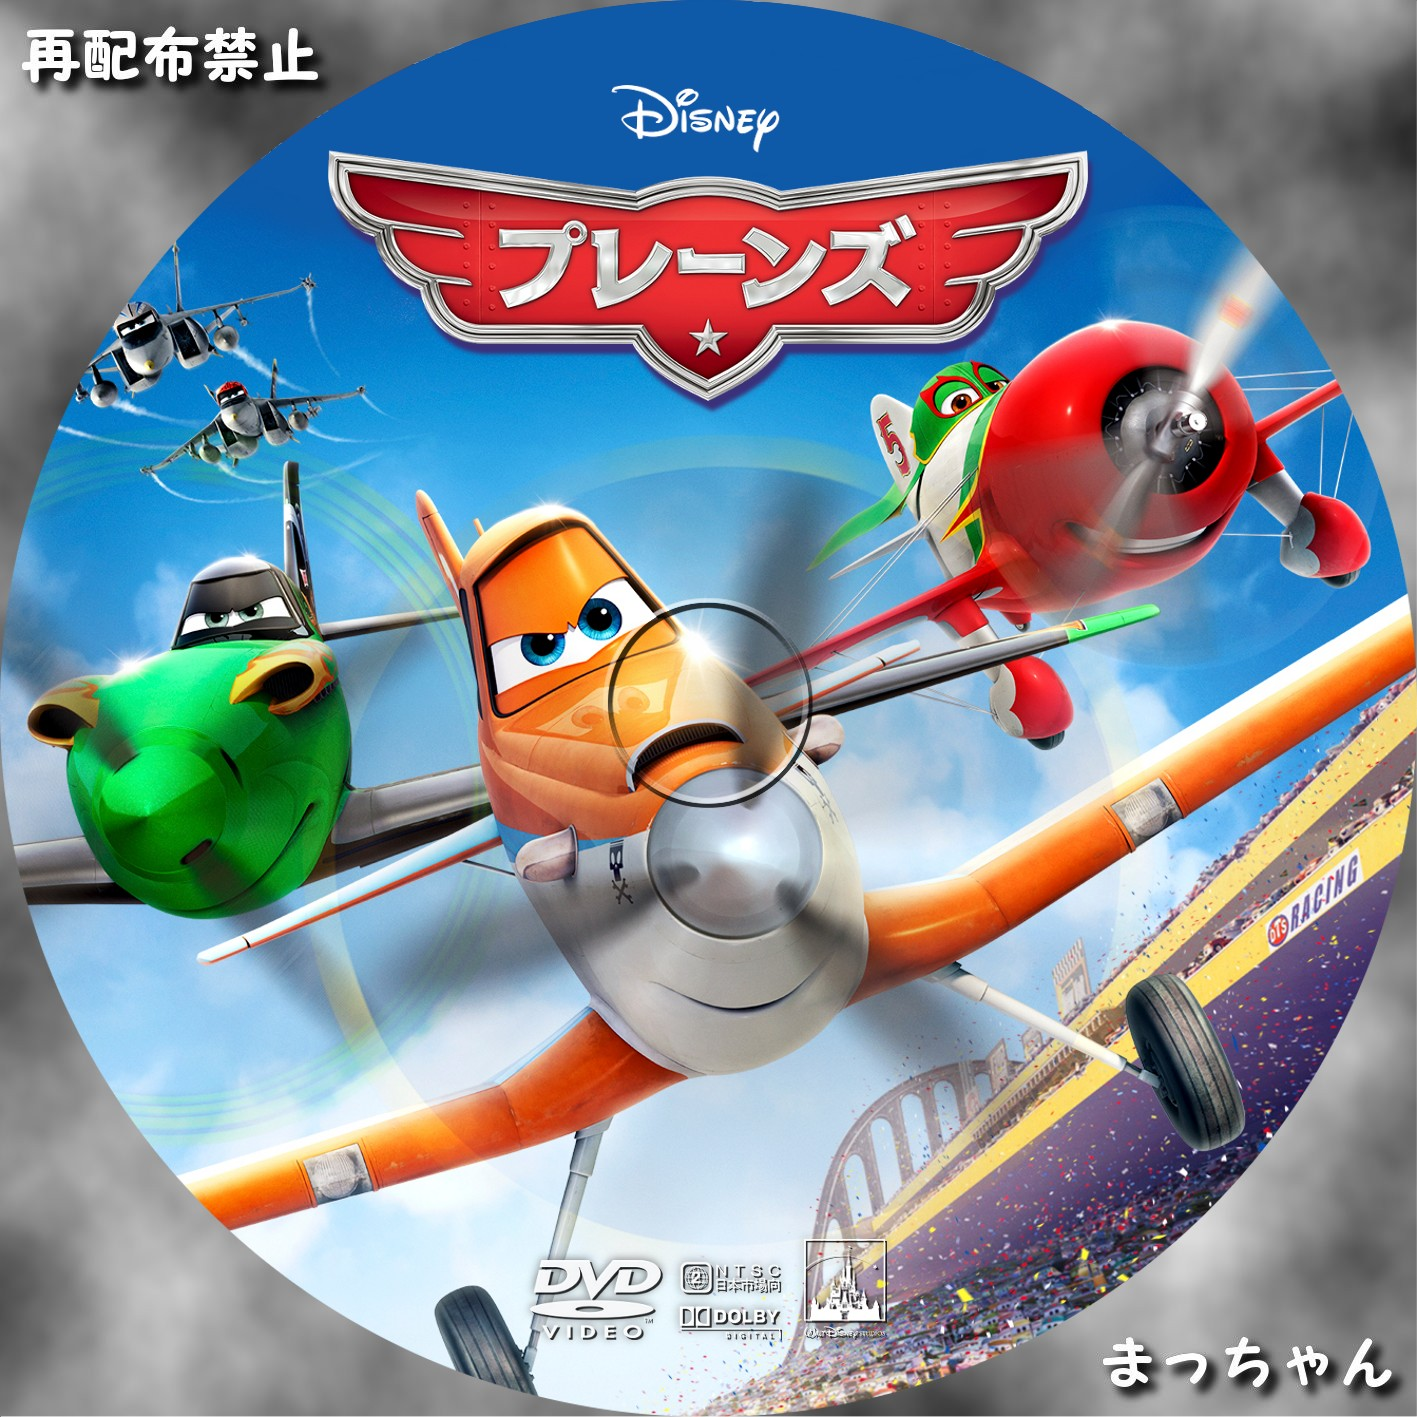 plane rescue cartoon with Blog Entry 787 on Rid  biner Force One Step Changers Blurr Sideswipe Official Images 333276 likewise buy Drones in addition Wife Melania Stumps For Donald Trump For First Time 1338764 together with American Idol Season 10 Top 24 Is Happening as well La Prefecture De Police  mande Des Drones De Surveillance.